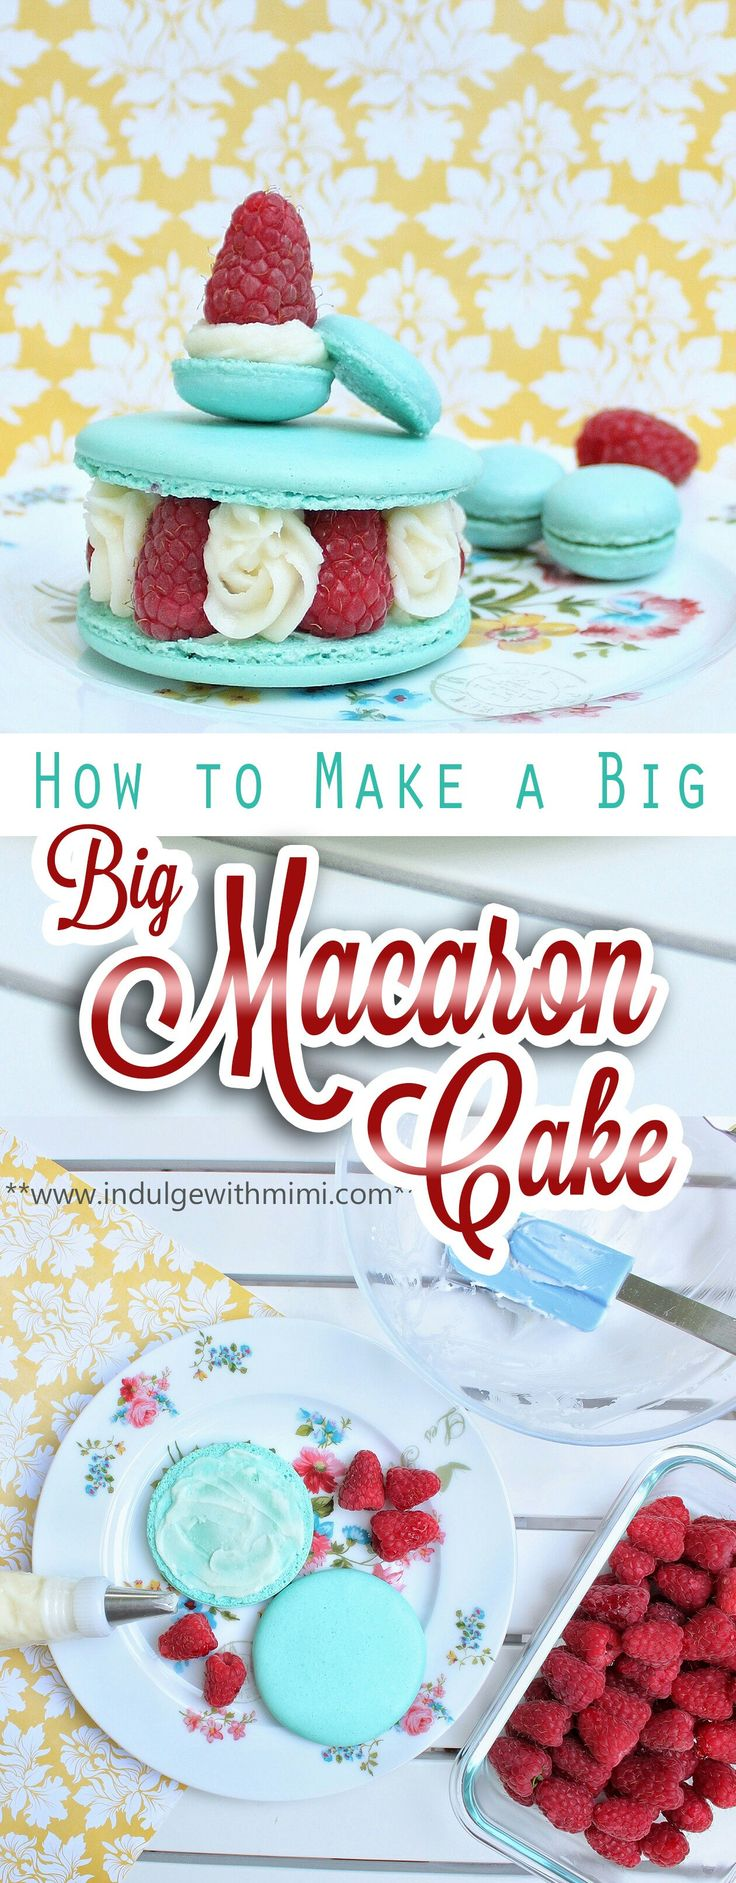 Tutorial and important tips on how to successfully bake a big macaron cake.